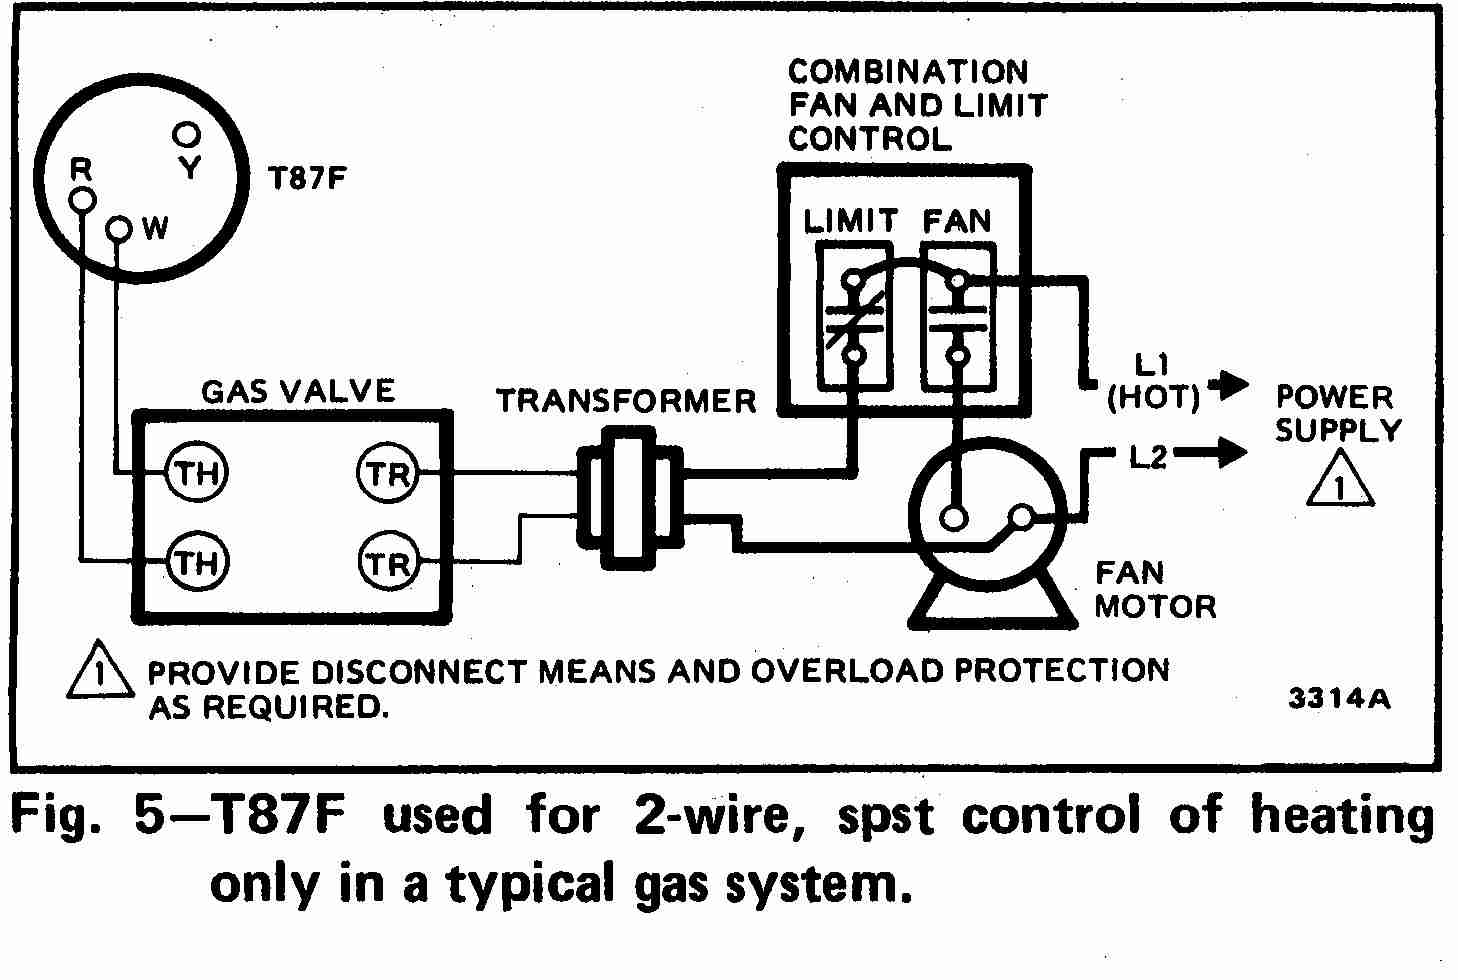 Room Thermostat Wiring Diagrams For Hvac Systems Drawing Of System Honeywell T87f Diagram 2 Wire Spst Control Heating Only In